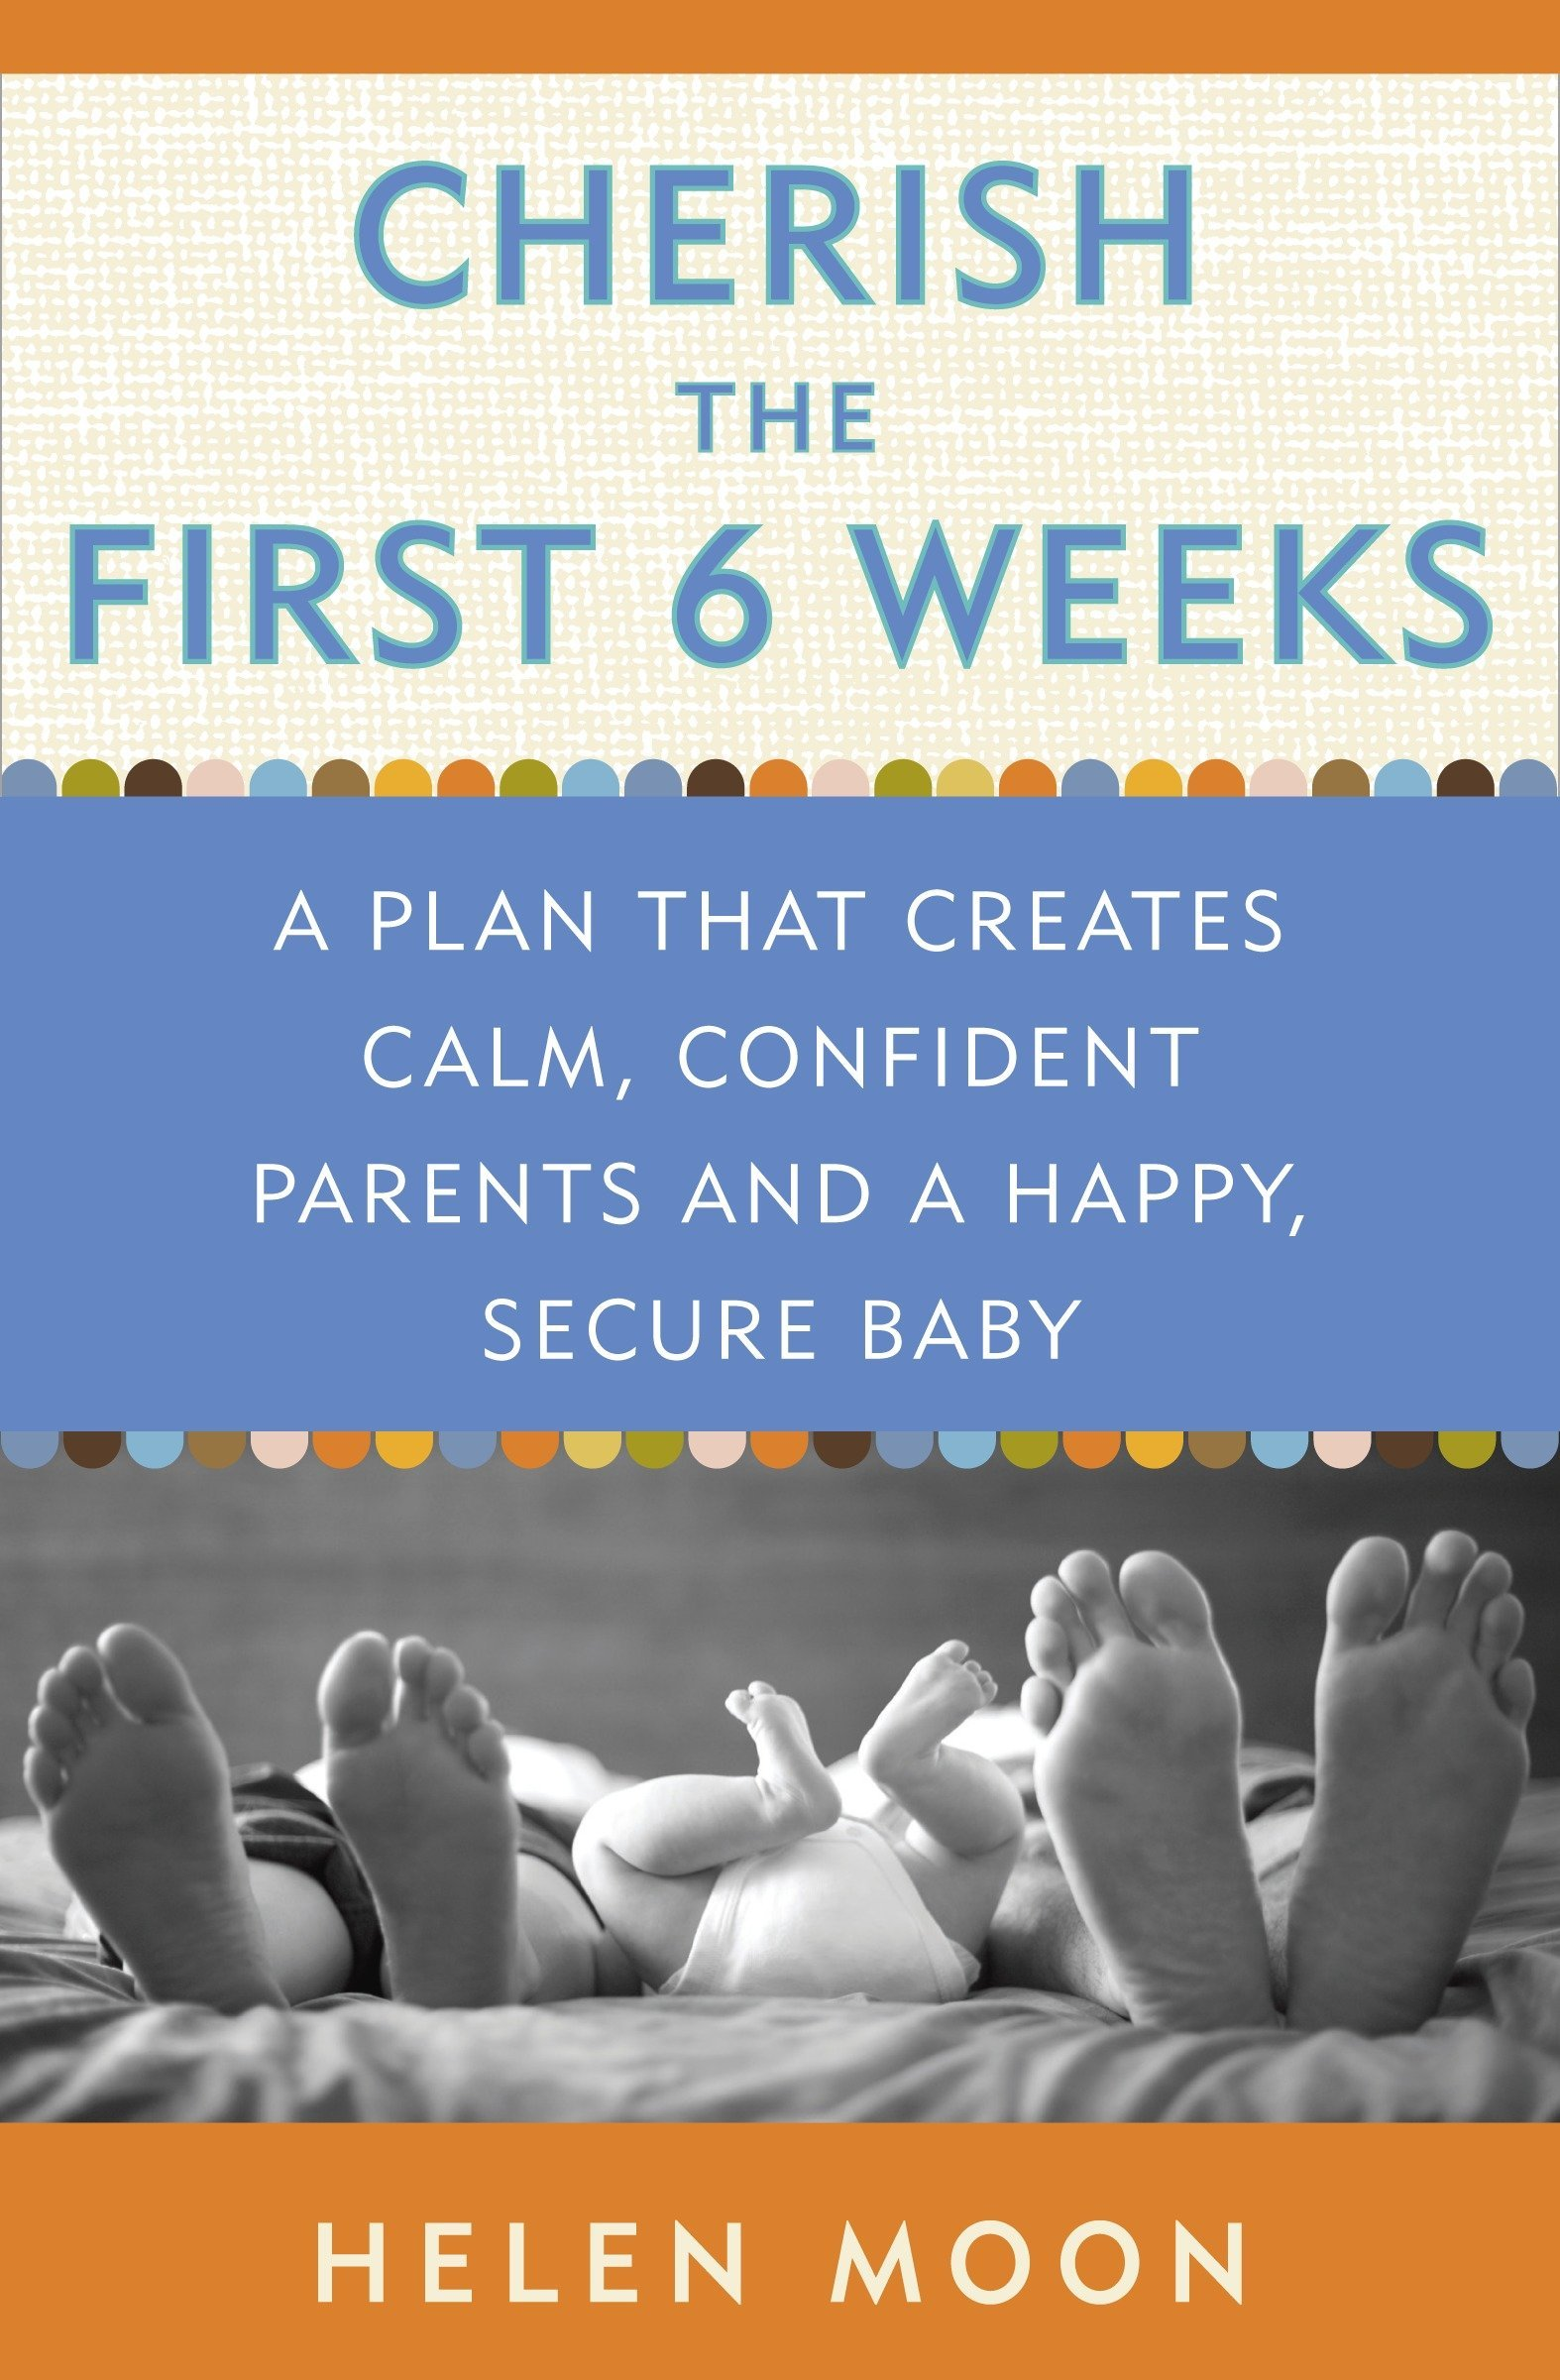 Cherish the First Six Weeks: A Plan that Creates Calm, Confident Parents and a Happy, Secure Baby by imusti